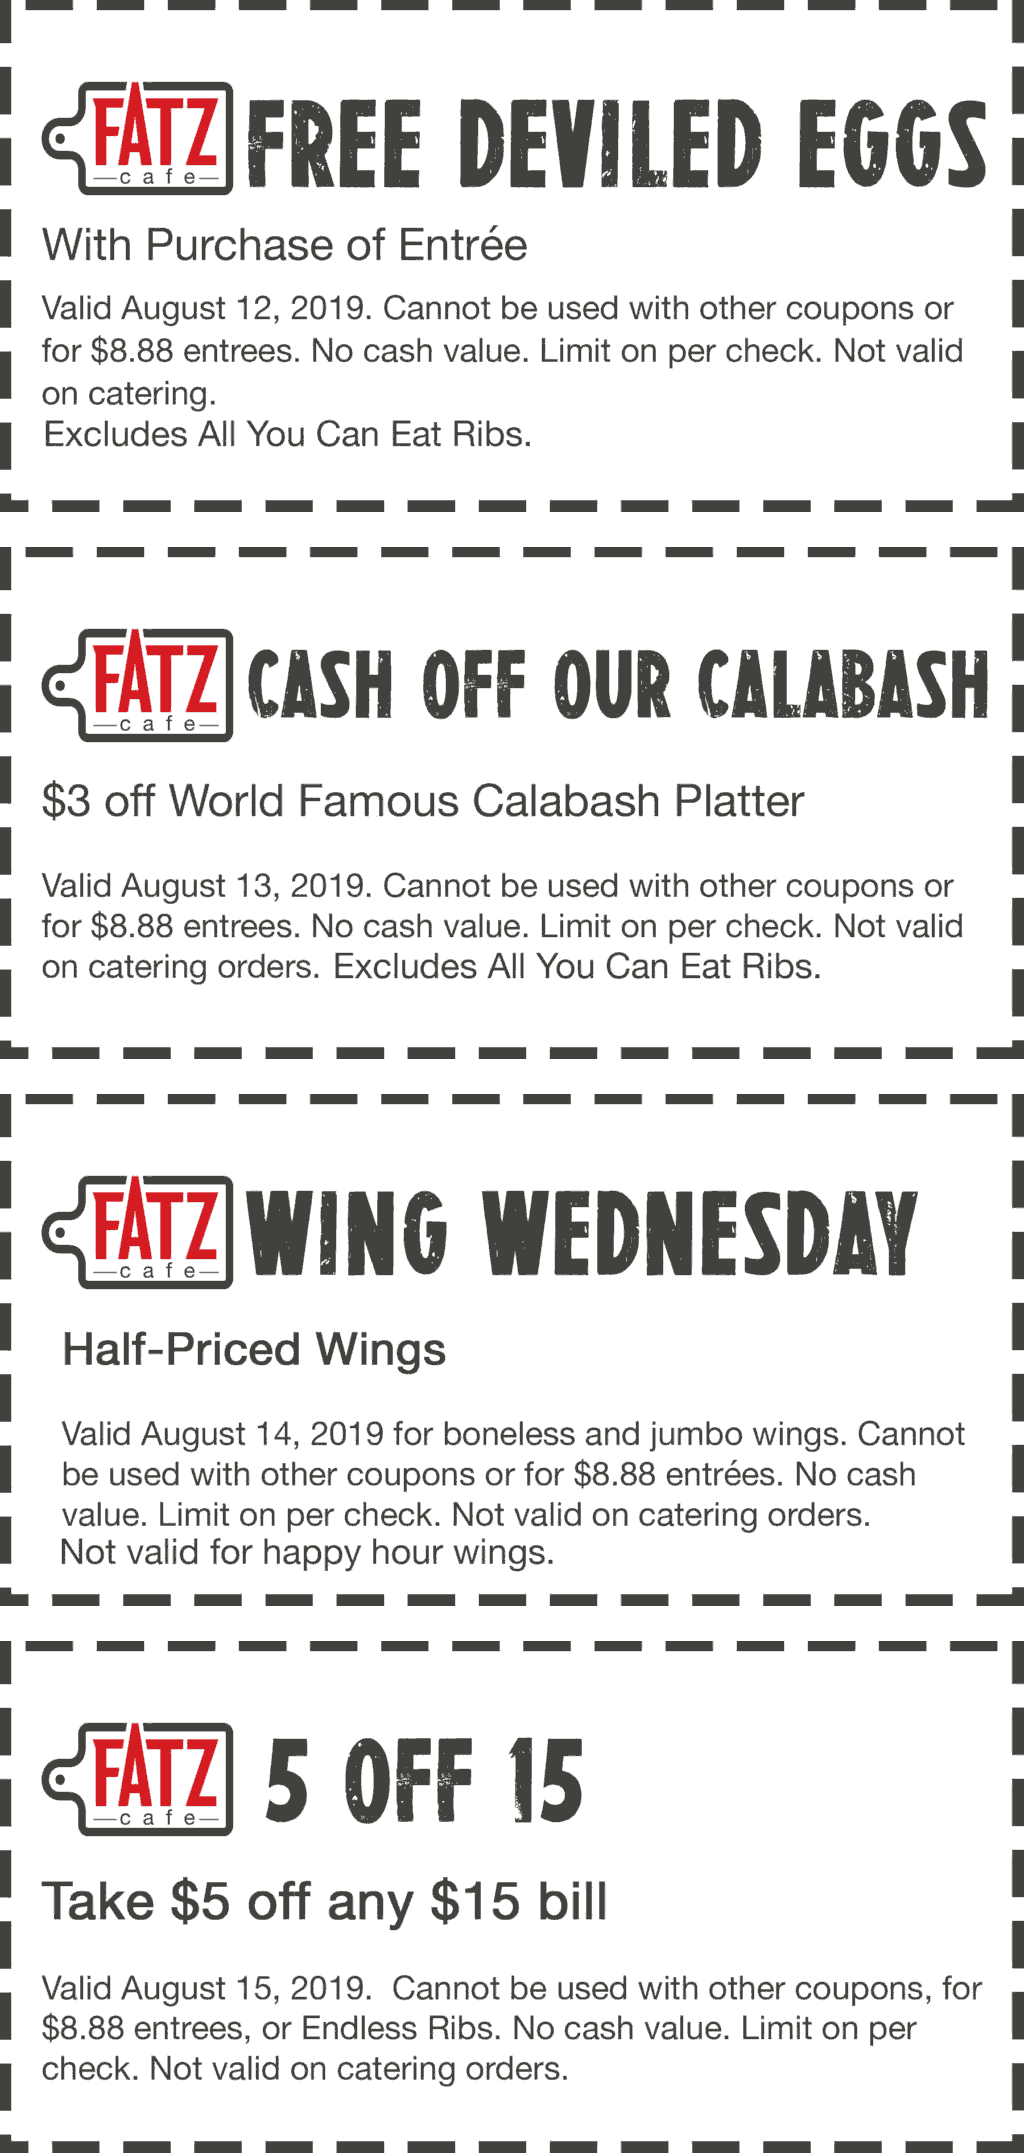 Fatz Cafe Coupon November 2019 $5 off $15 & more at Fatz cafe